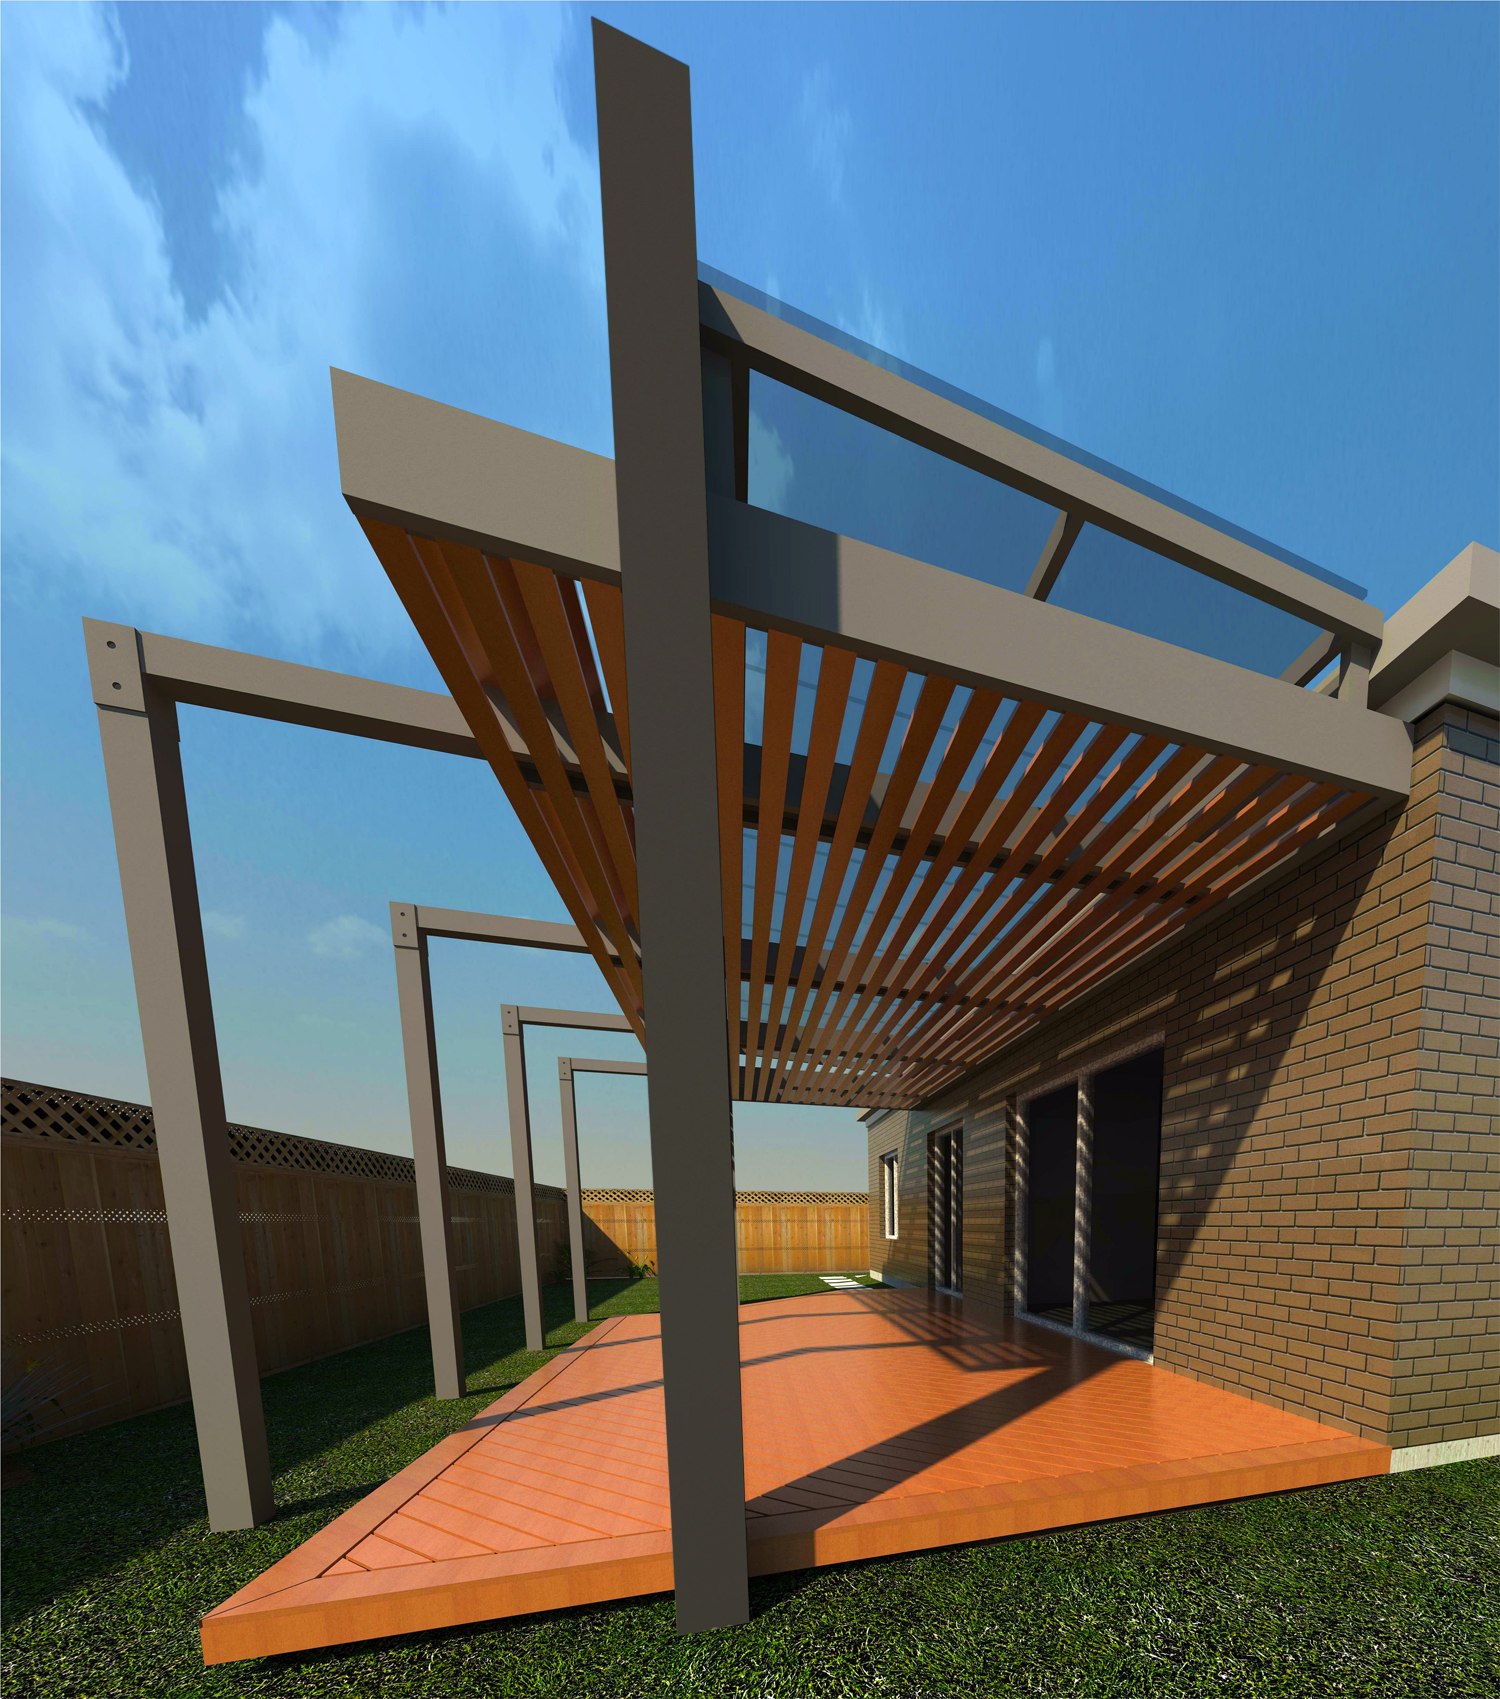 Pergola Elevation Designs: JB Construction Services PTY LTD